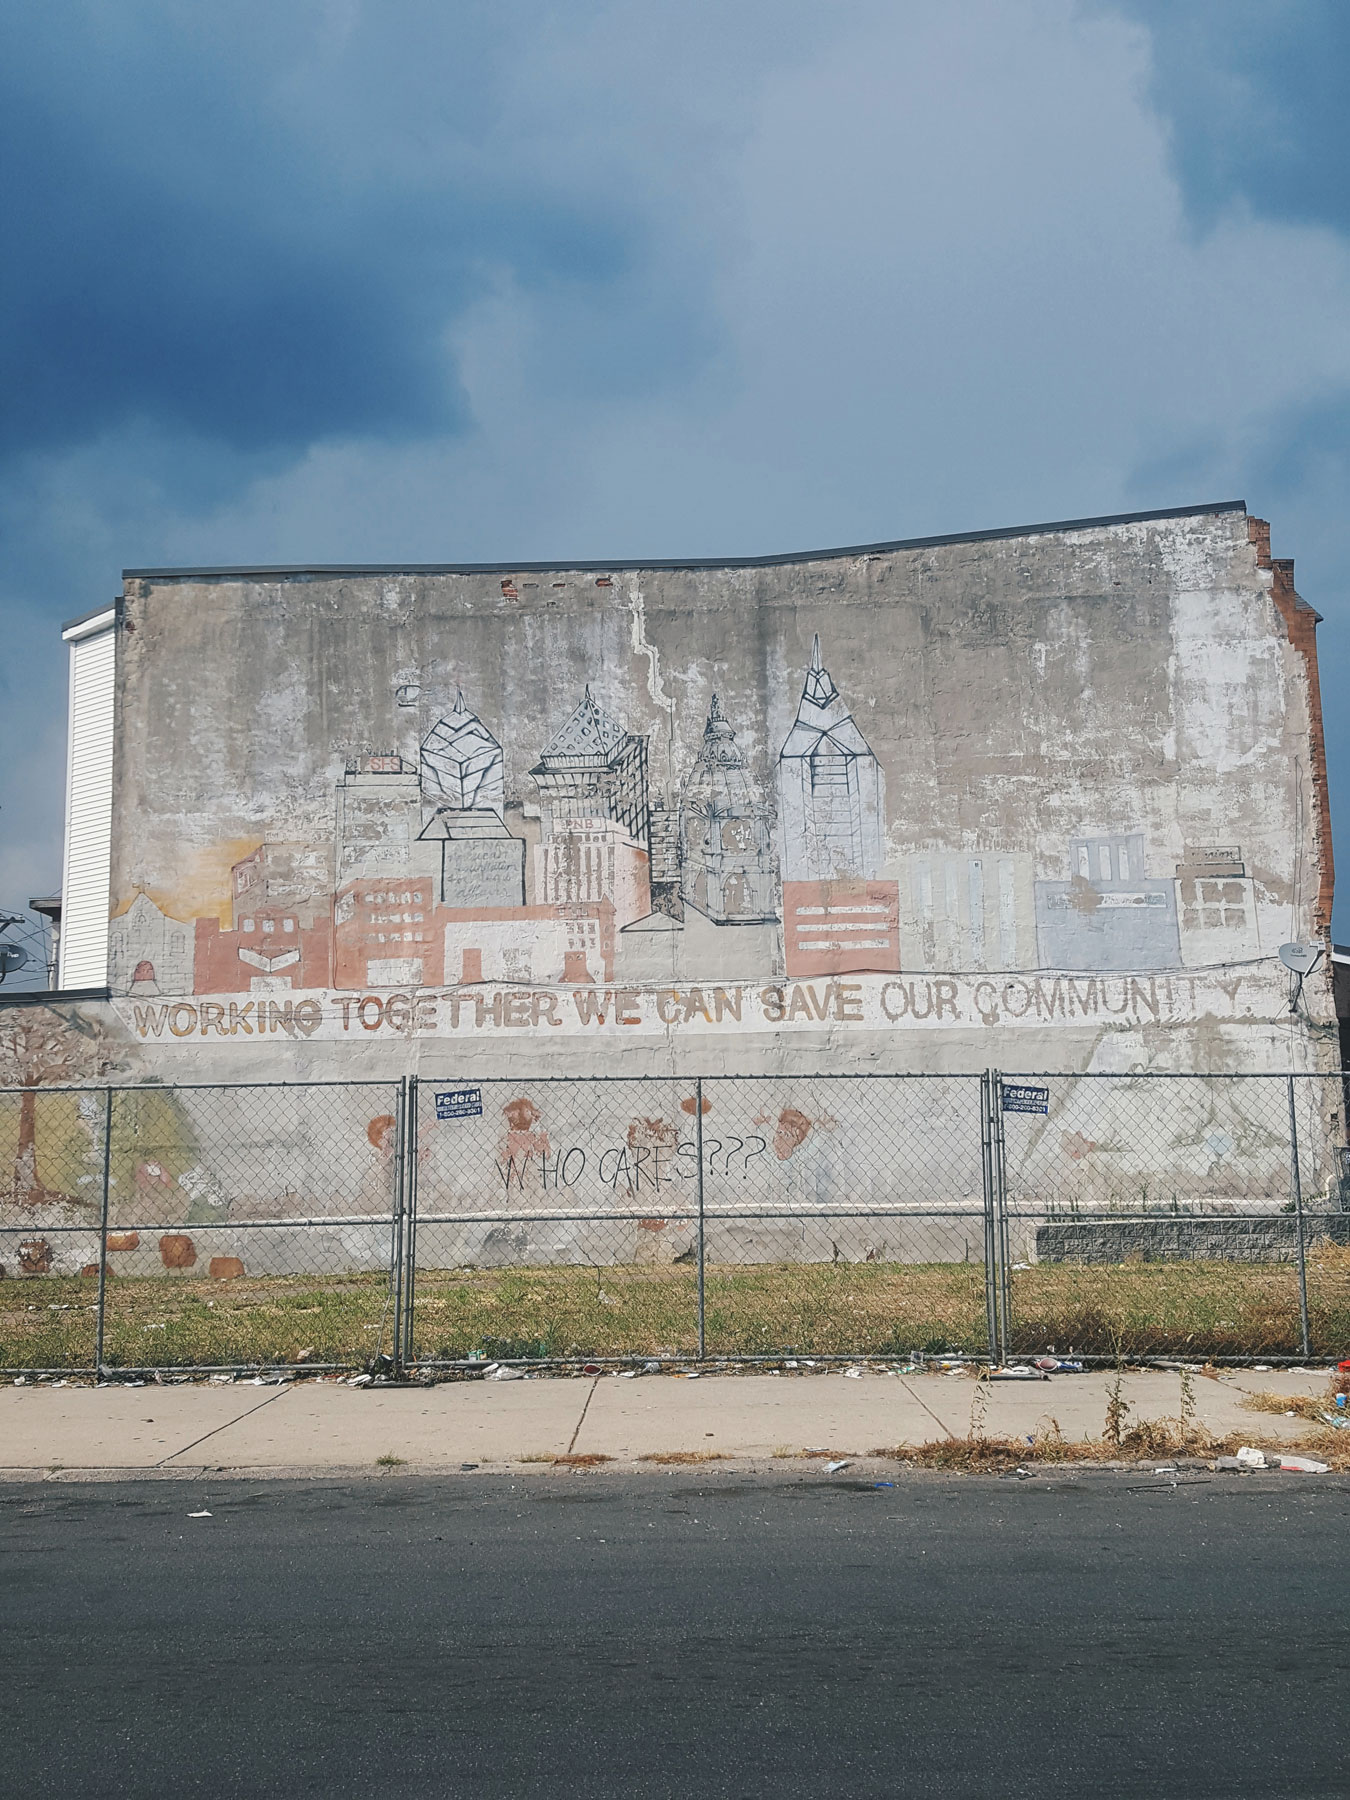 A photo of a faded mural depicting the pre-Comcast Center Philadelphia skyline, with the words Working Together We Can Save Our Community. The mural is behind a fenced in lot where a house once stood. Someone has spray painted WHO CARES??? underneath the original message.